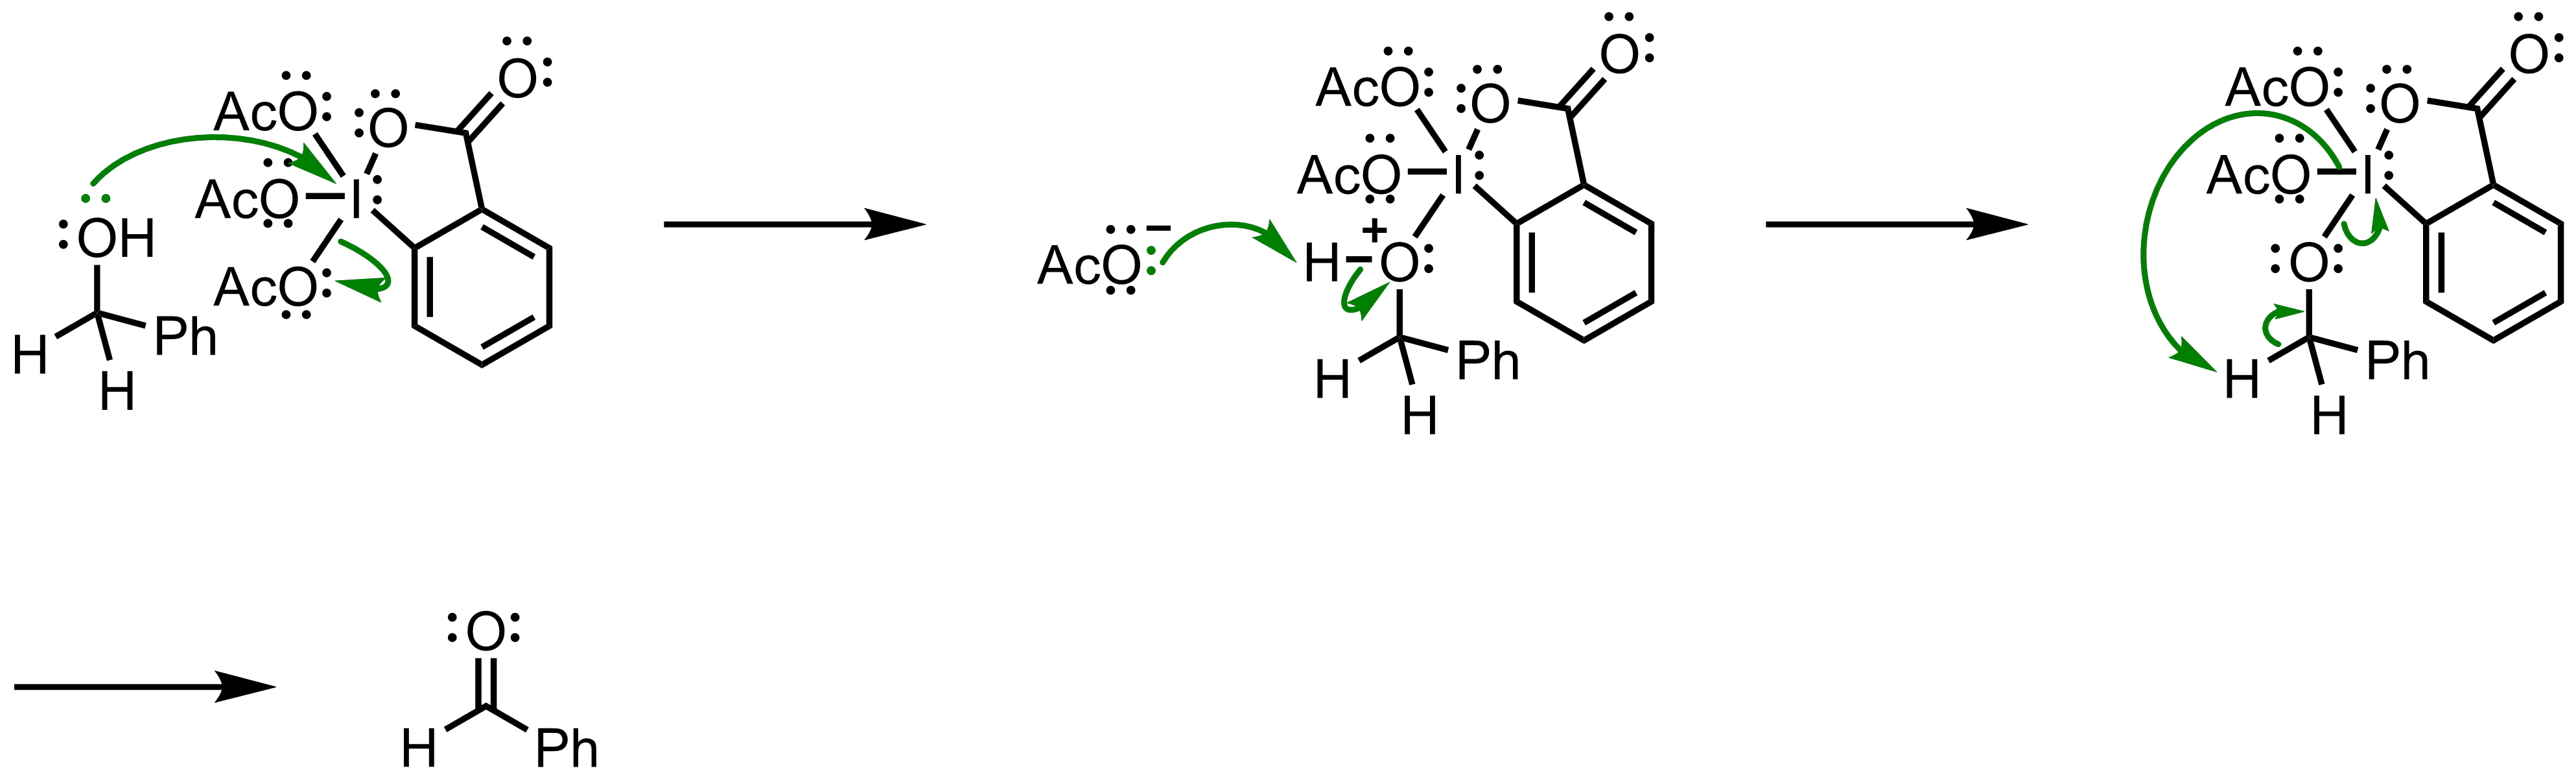 Mechanism of the Dess-Martin Oxidation